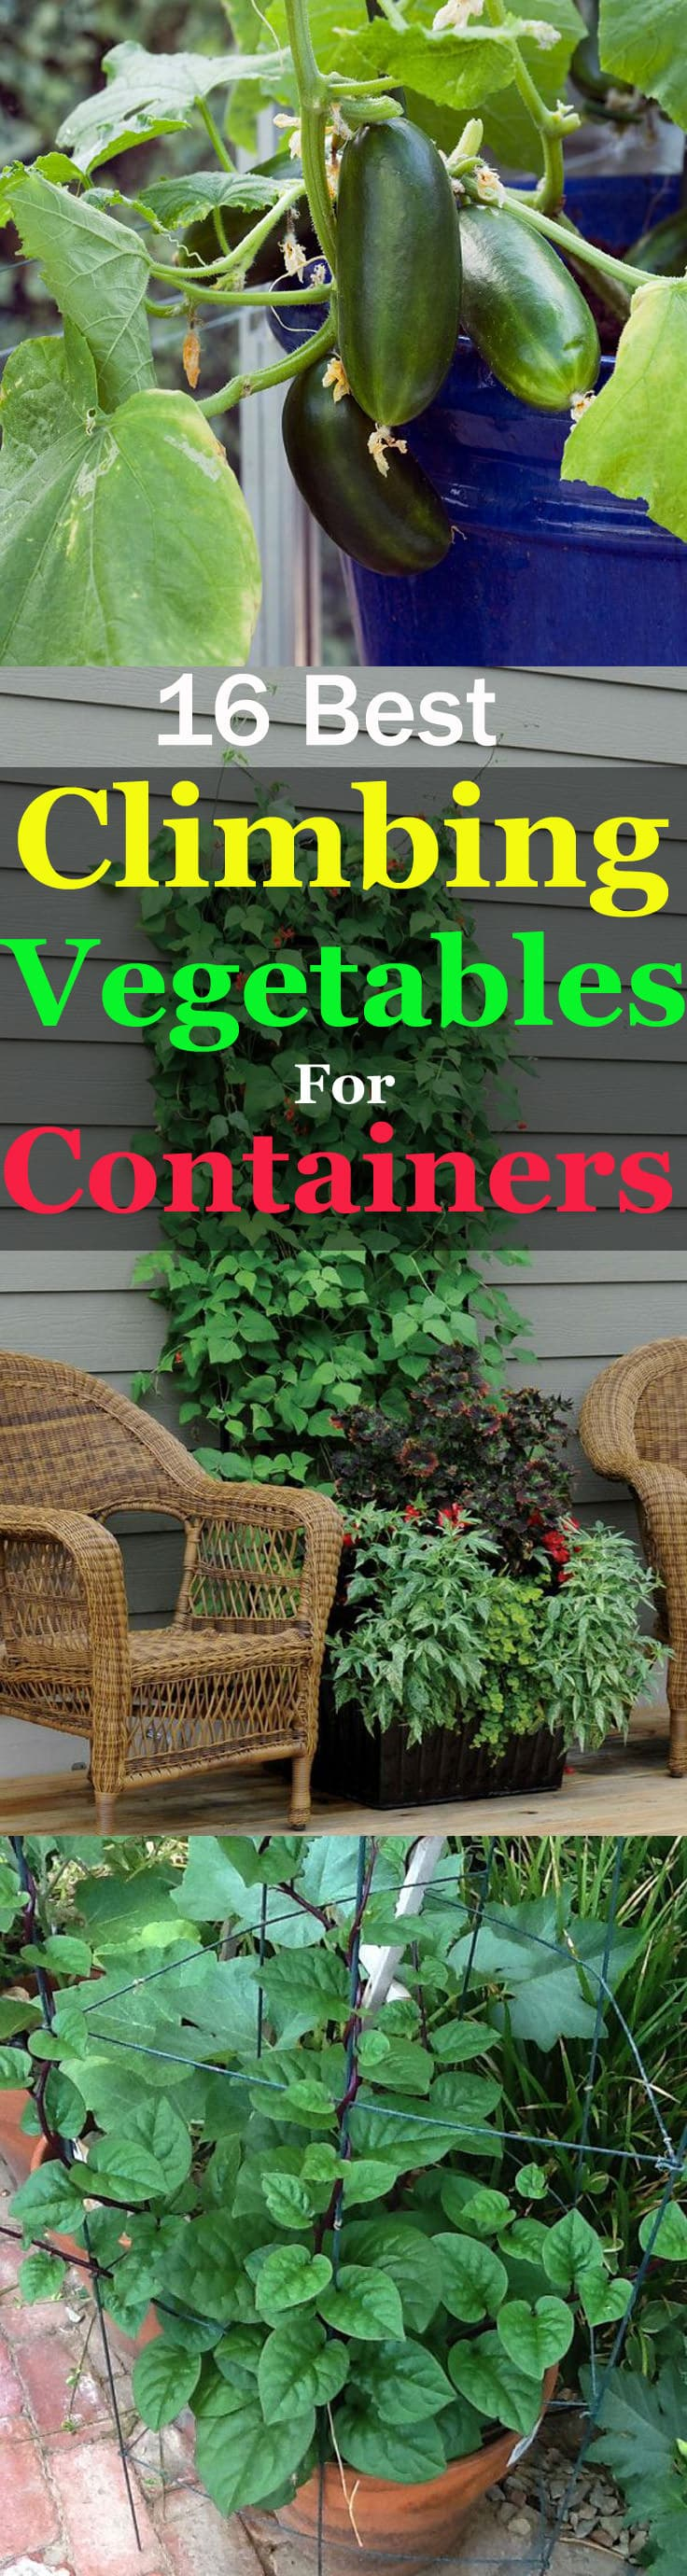 Take a look at this informative list of best climbing and vining vegetable for containers. These vegetables are productive and take your vertical space to grow!